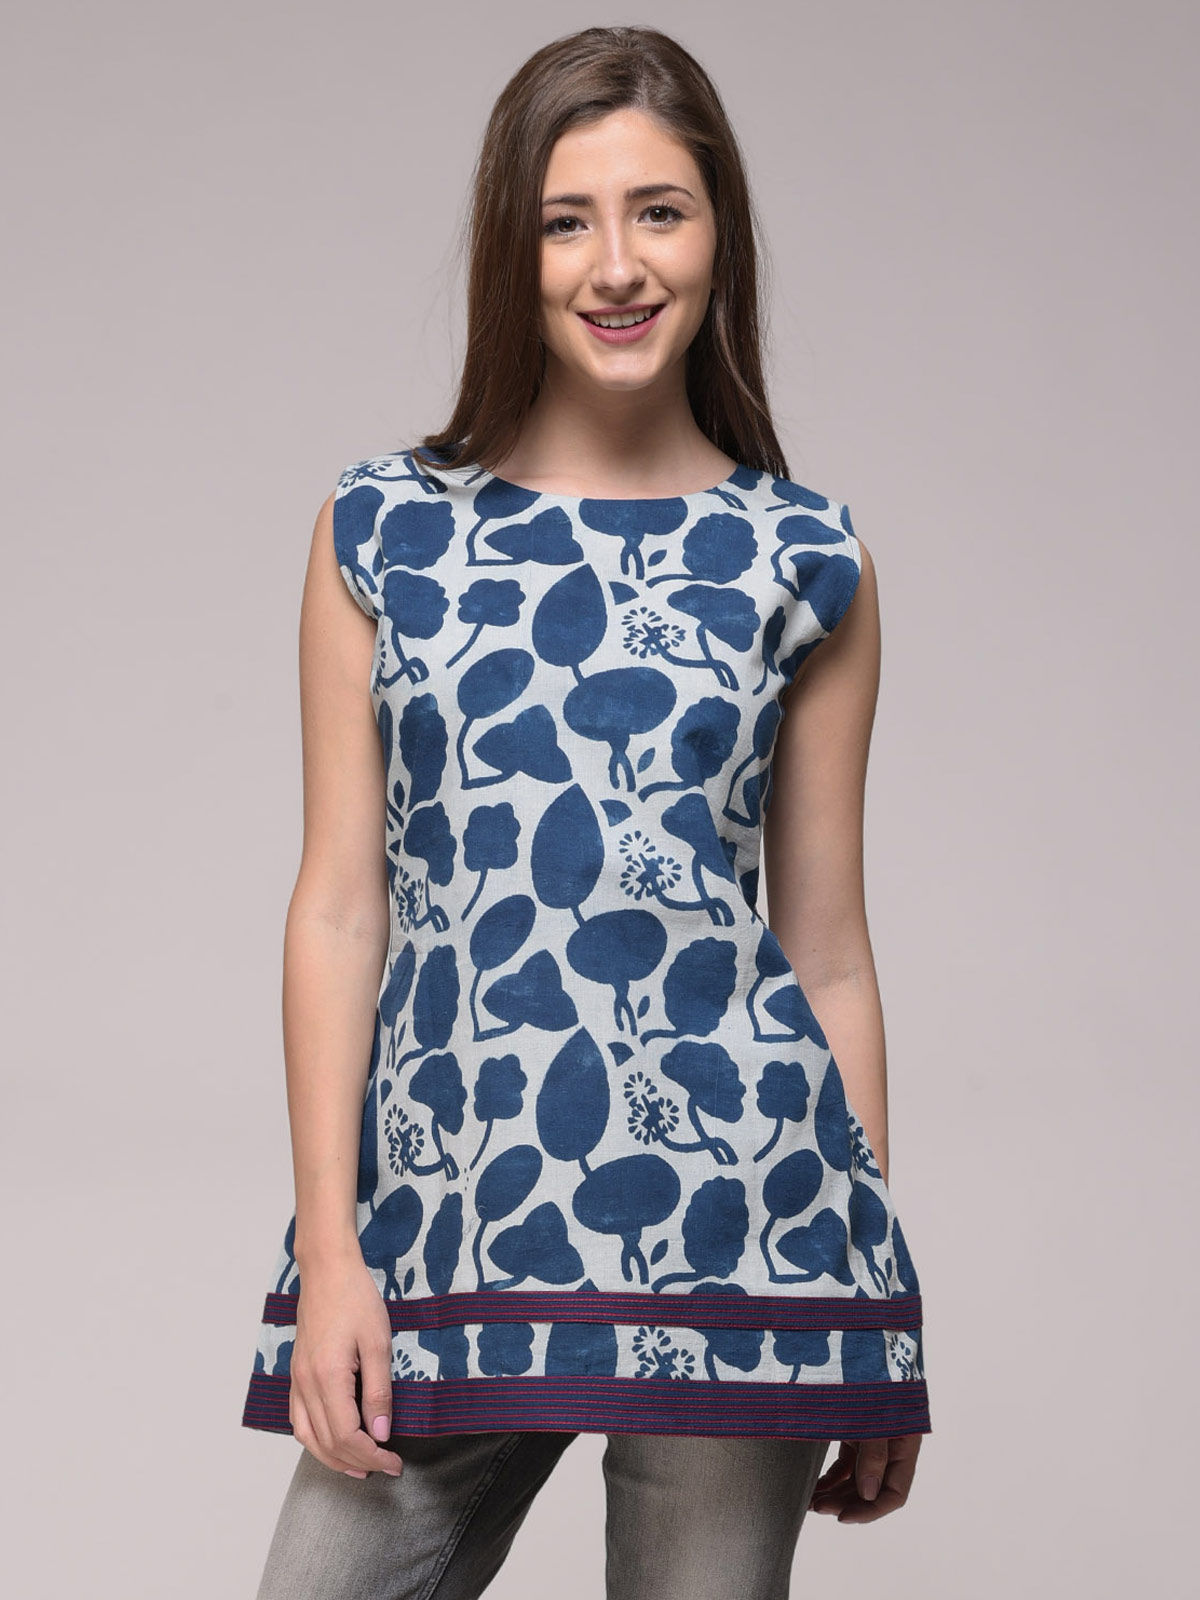 DABU FLORAL TOP WITH EMBROIDERY DETAILING